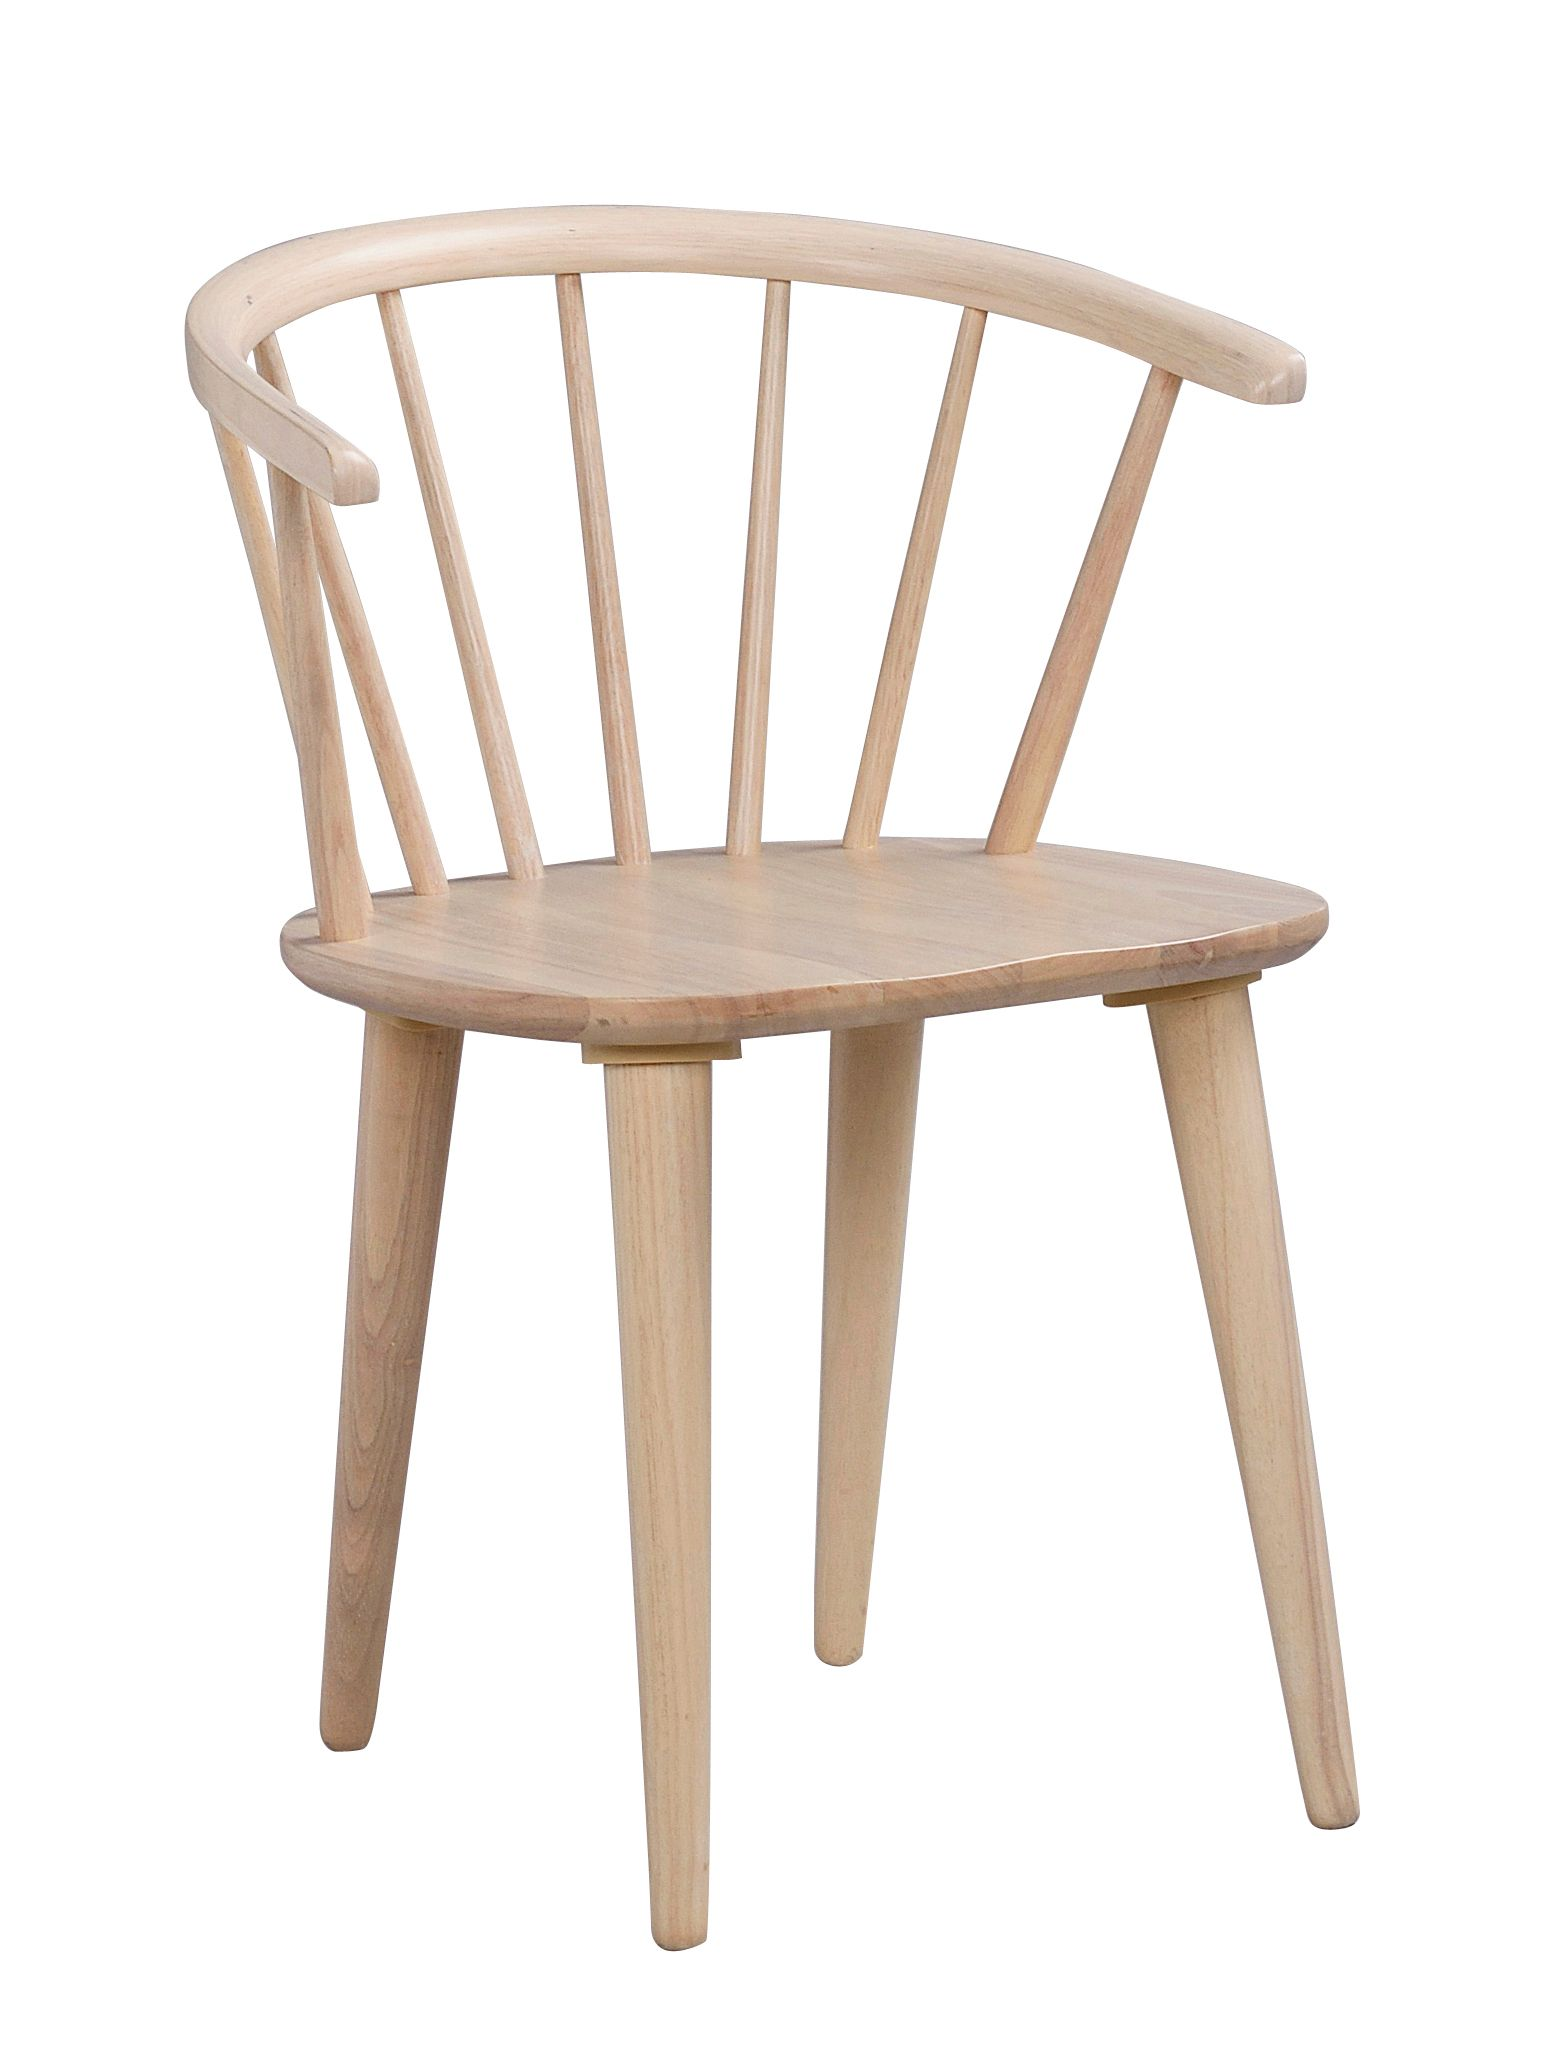 CARMEN CHAIR Whitewash Solid Rubberwood Chair